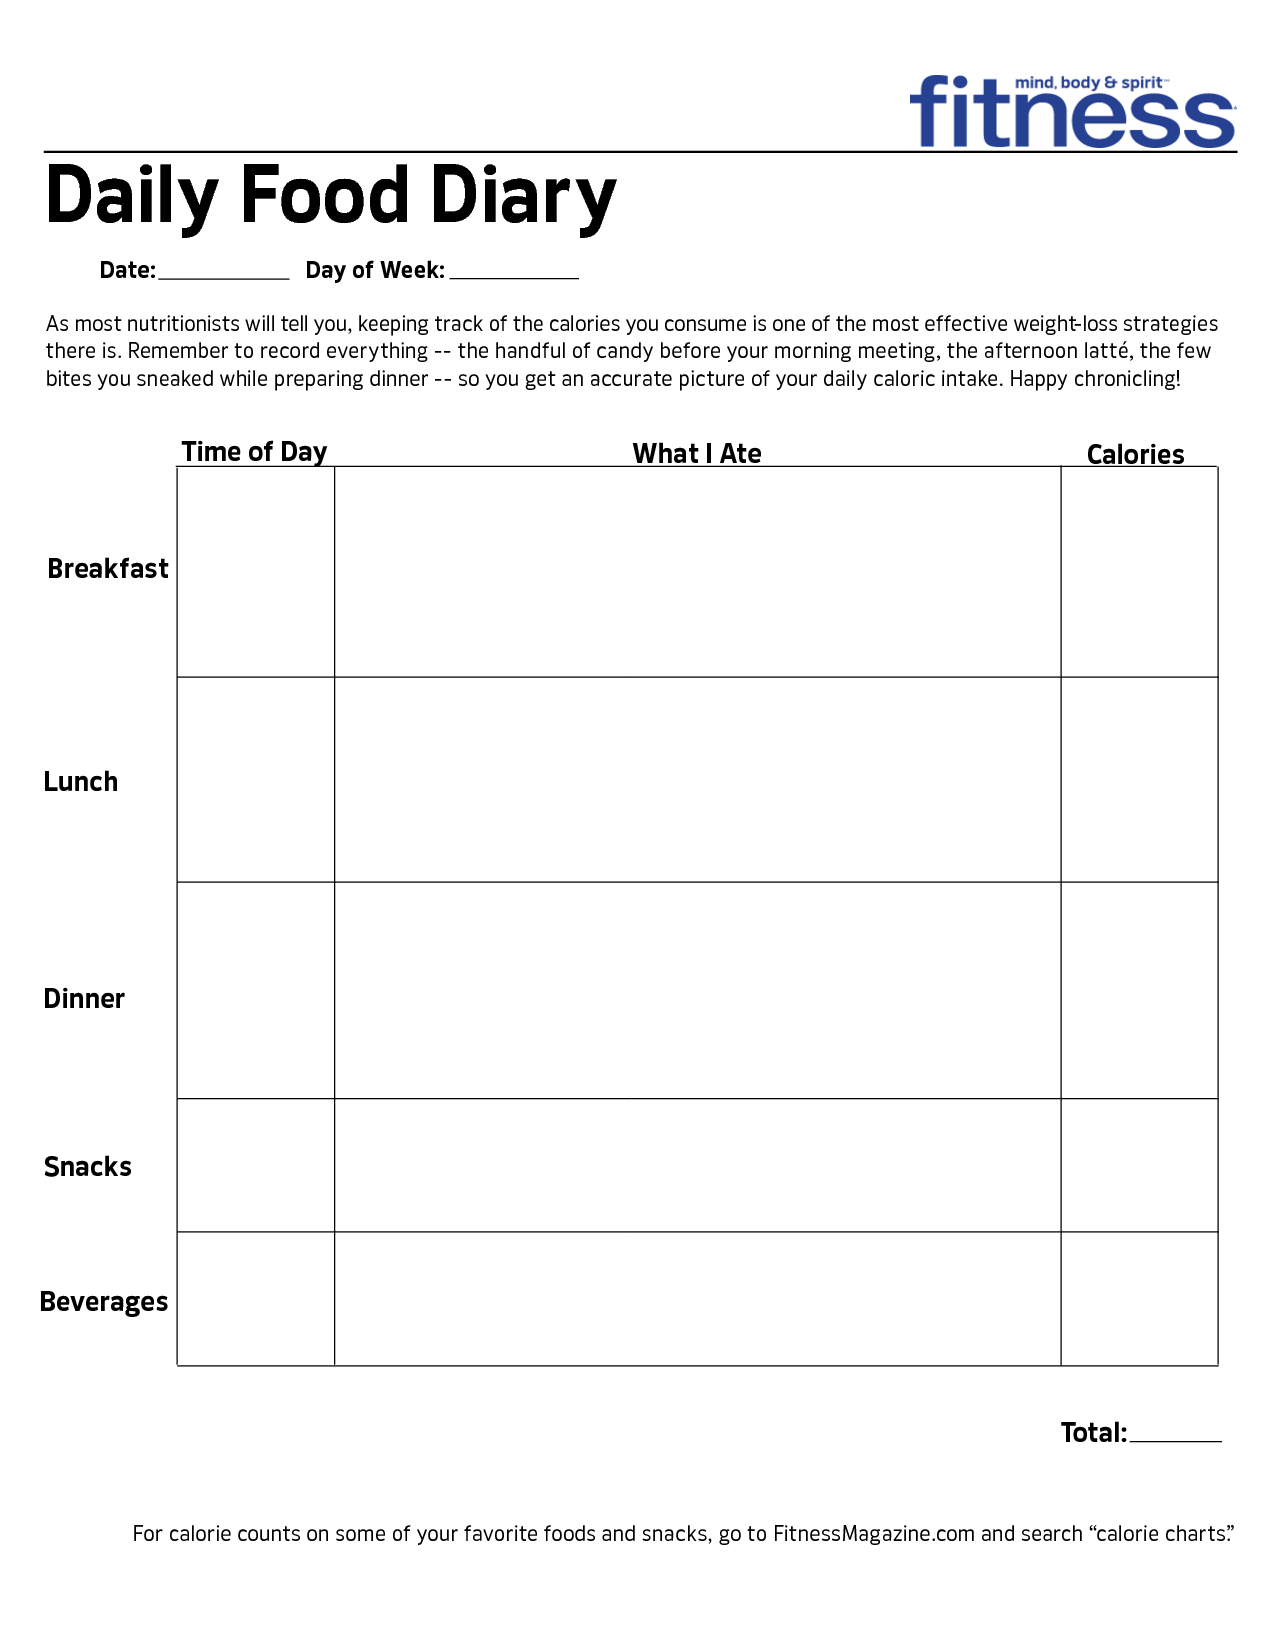 9 best images of daily food diary printable daily food for Keeping a food diary template